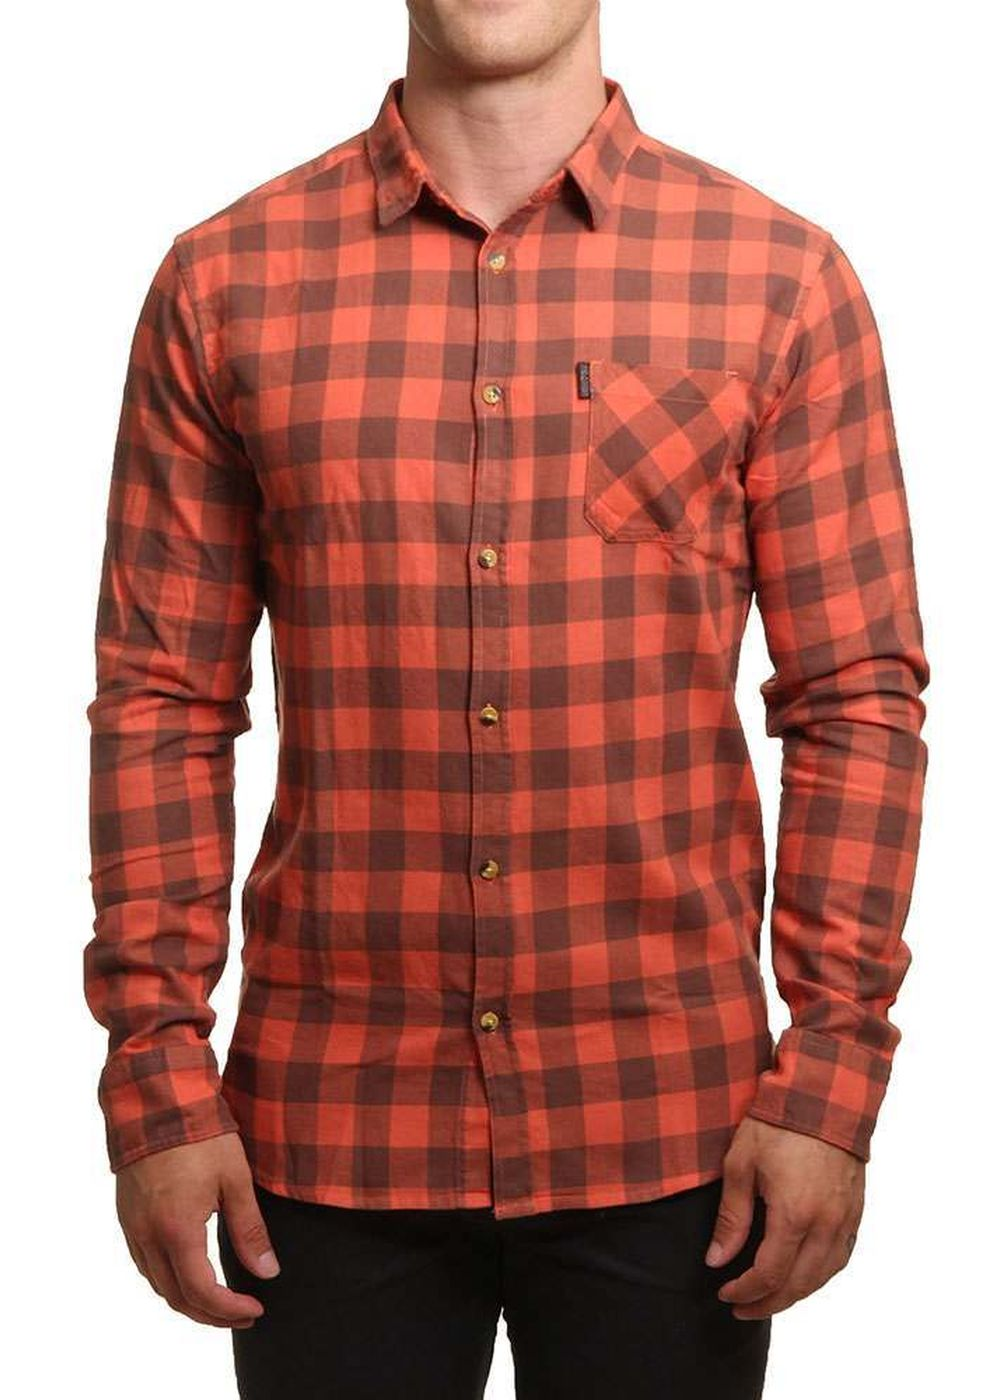 ripcurl-check-shirt-ginger-spice